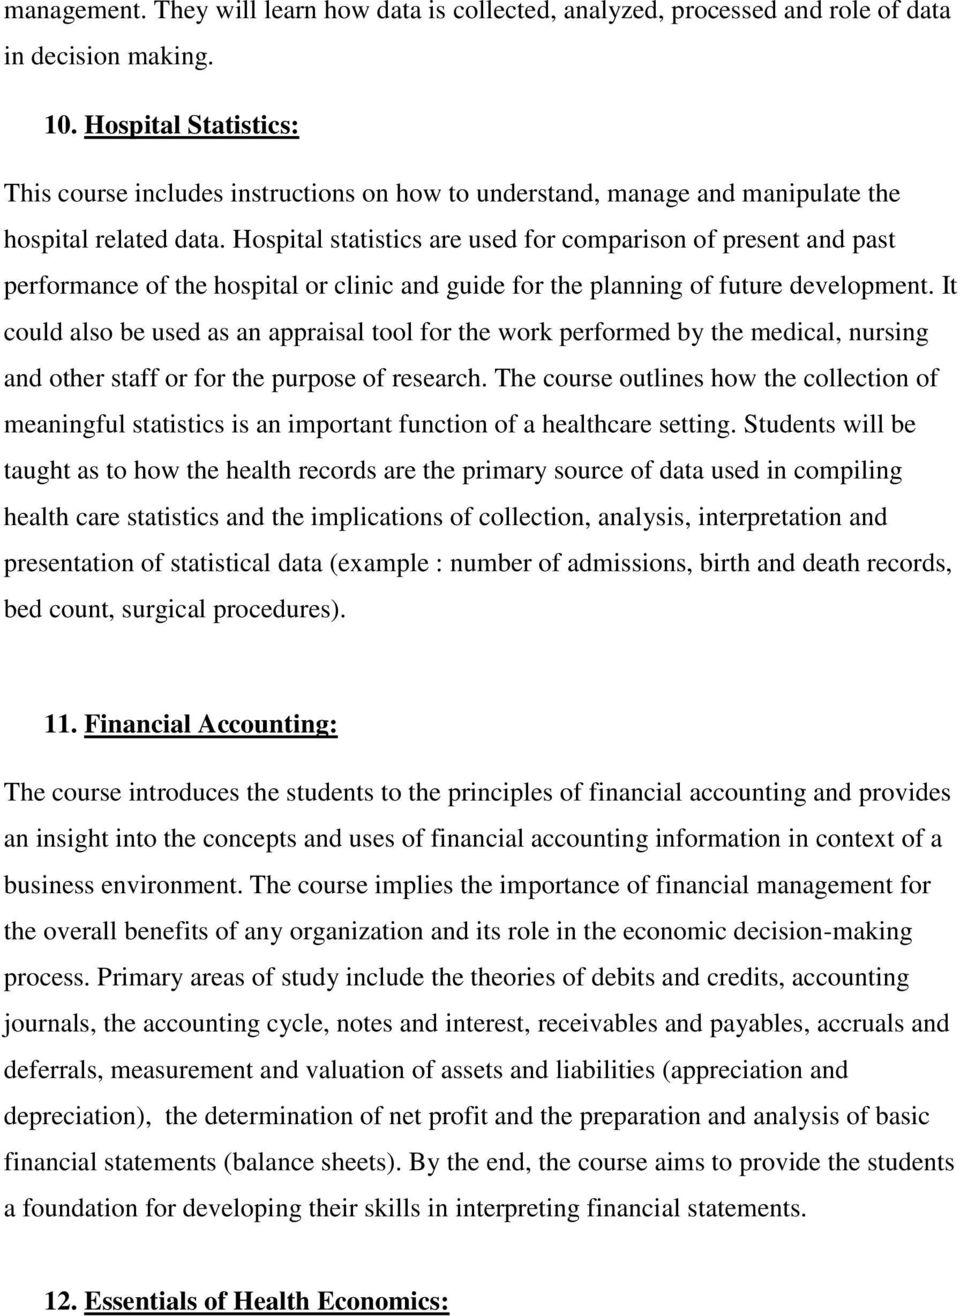 Hospital statistics are used for comparison of present and past performance of the hospital or clinic and guide for the planning of future development.